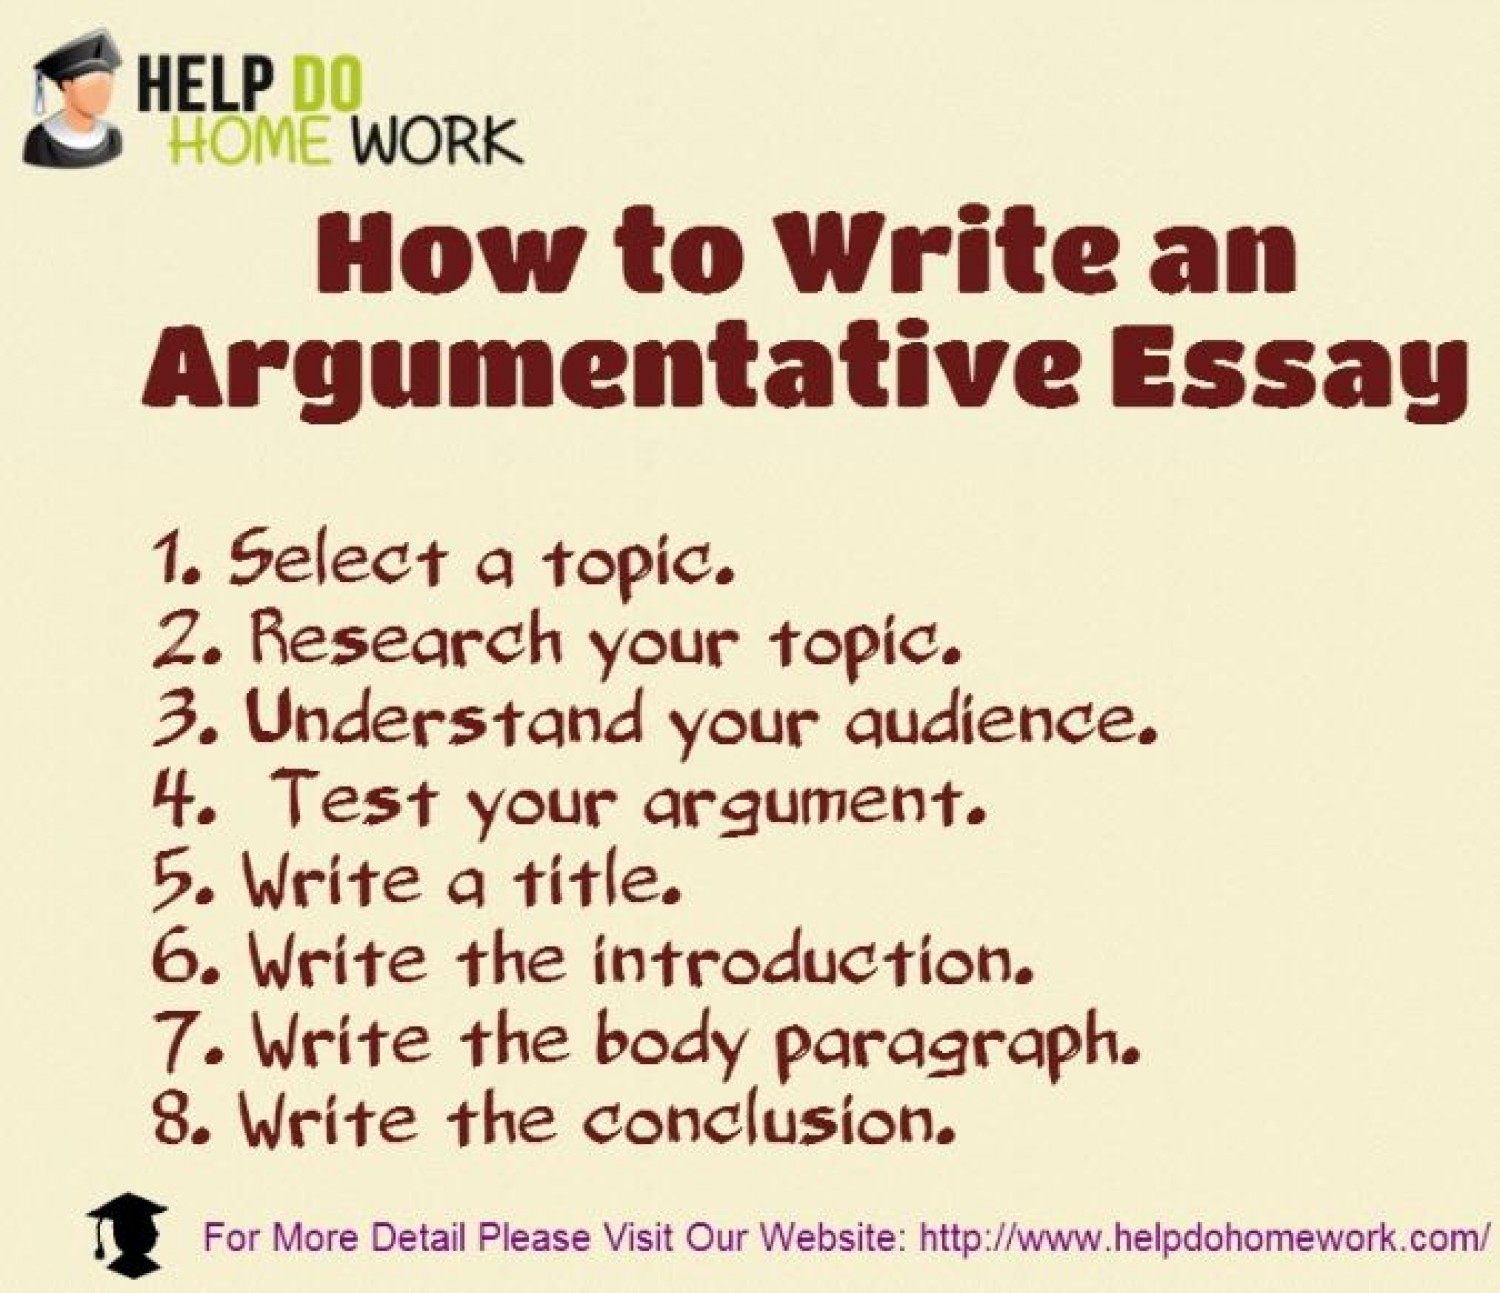 011 Utilize Functional And Utilitarian Approach For Your Academic Work 53b0d9bea1f6e W1500 Jpg Essay Example Write An Surprising Argumentative Sample In Which You State Defend Full